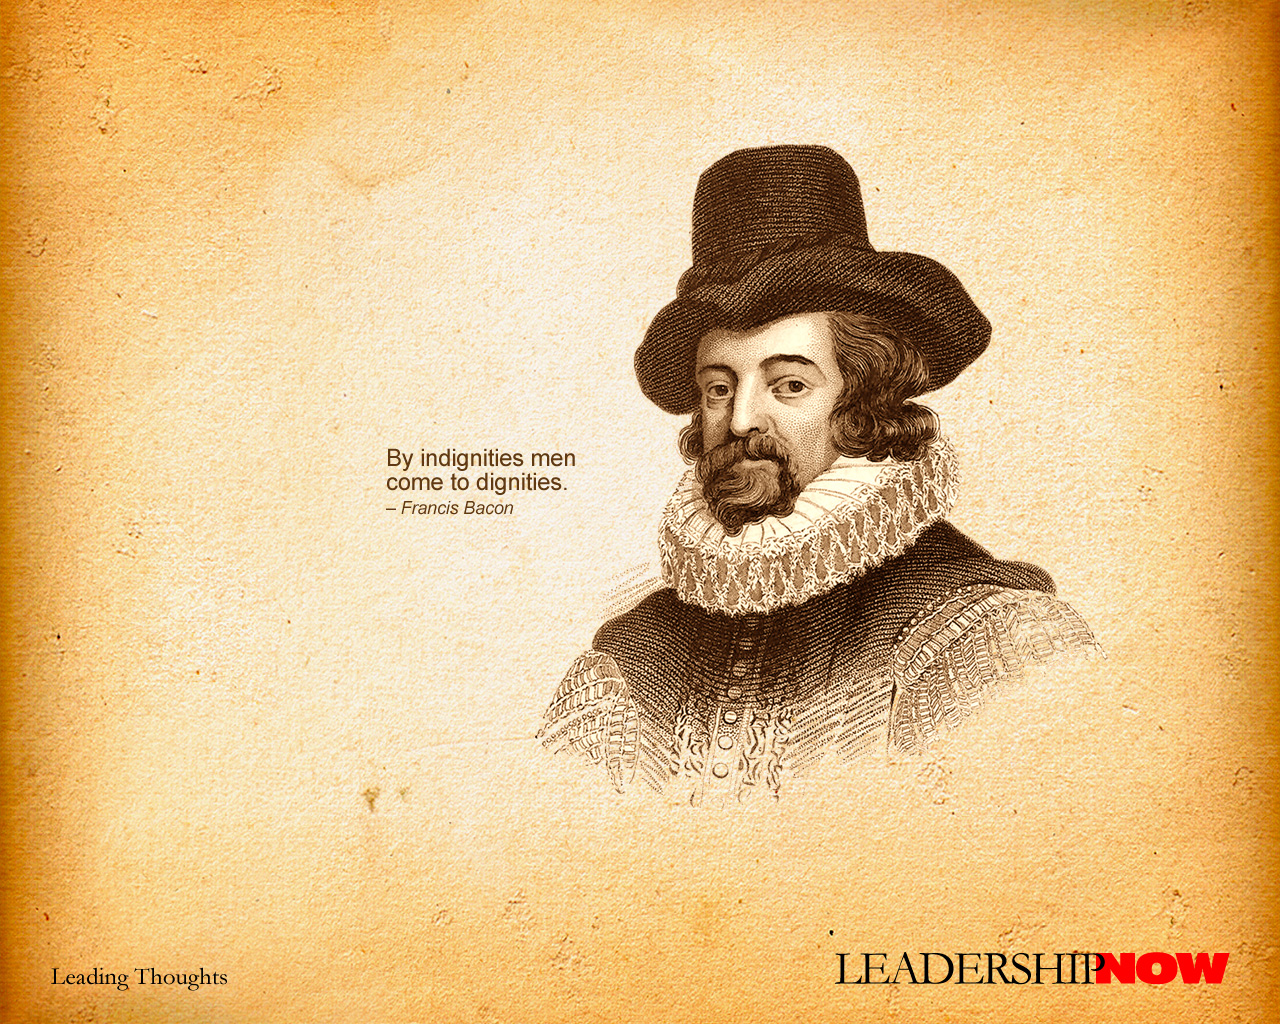 Wallpaper On Time Quotes Leadershipnow Wallpapers To Download